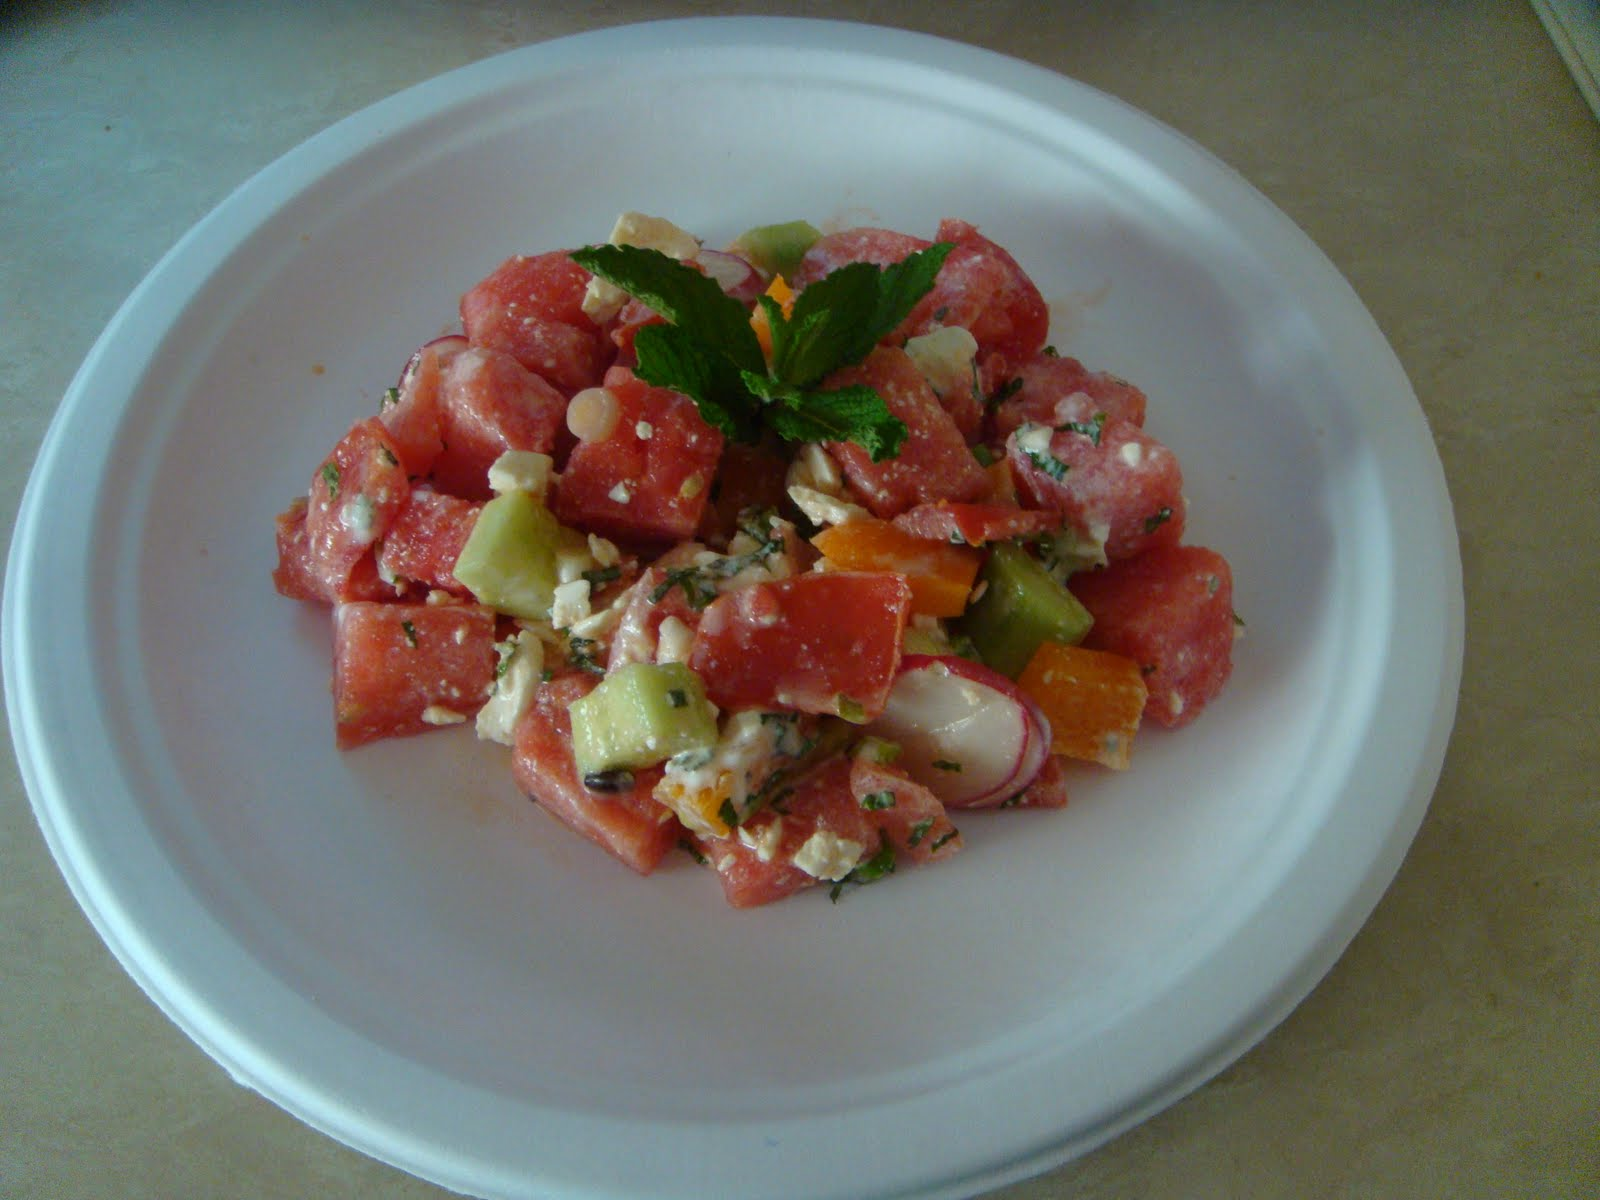 Creative Cooking: Chopped Veggie Salad with Watermelon and Feta Cheese